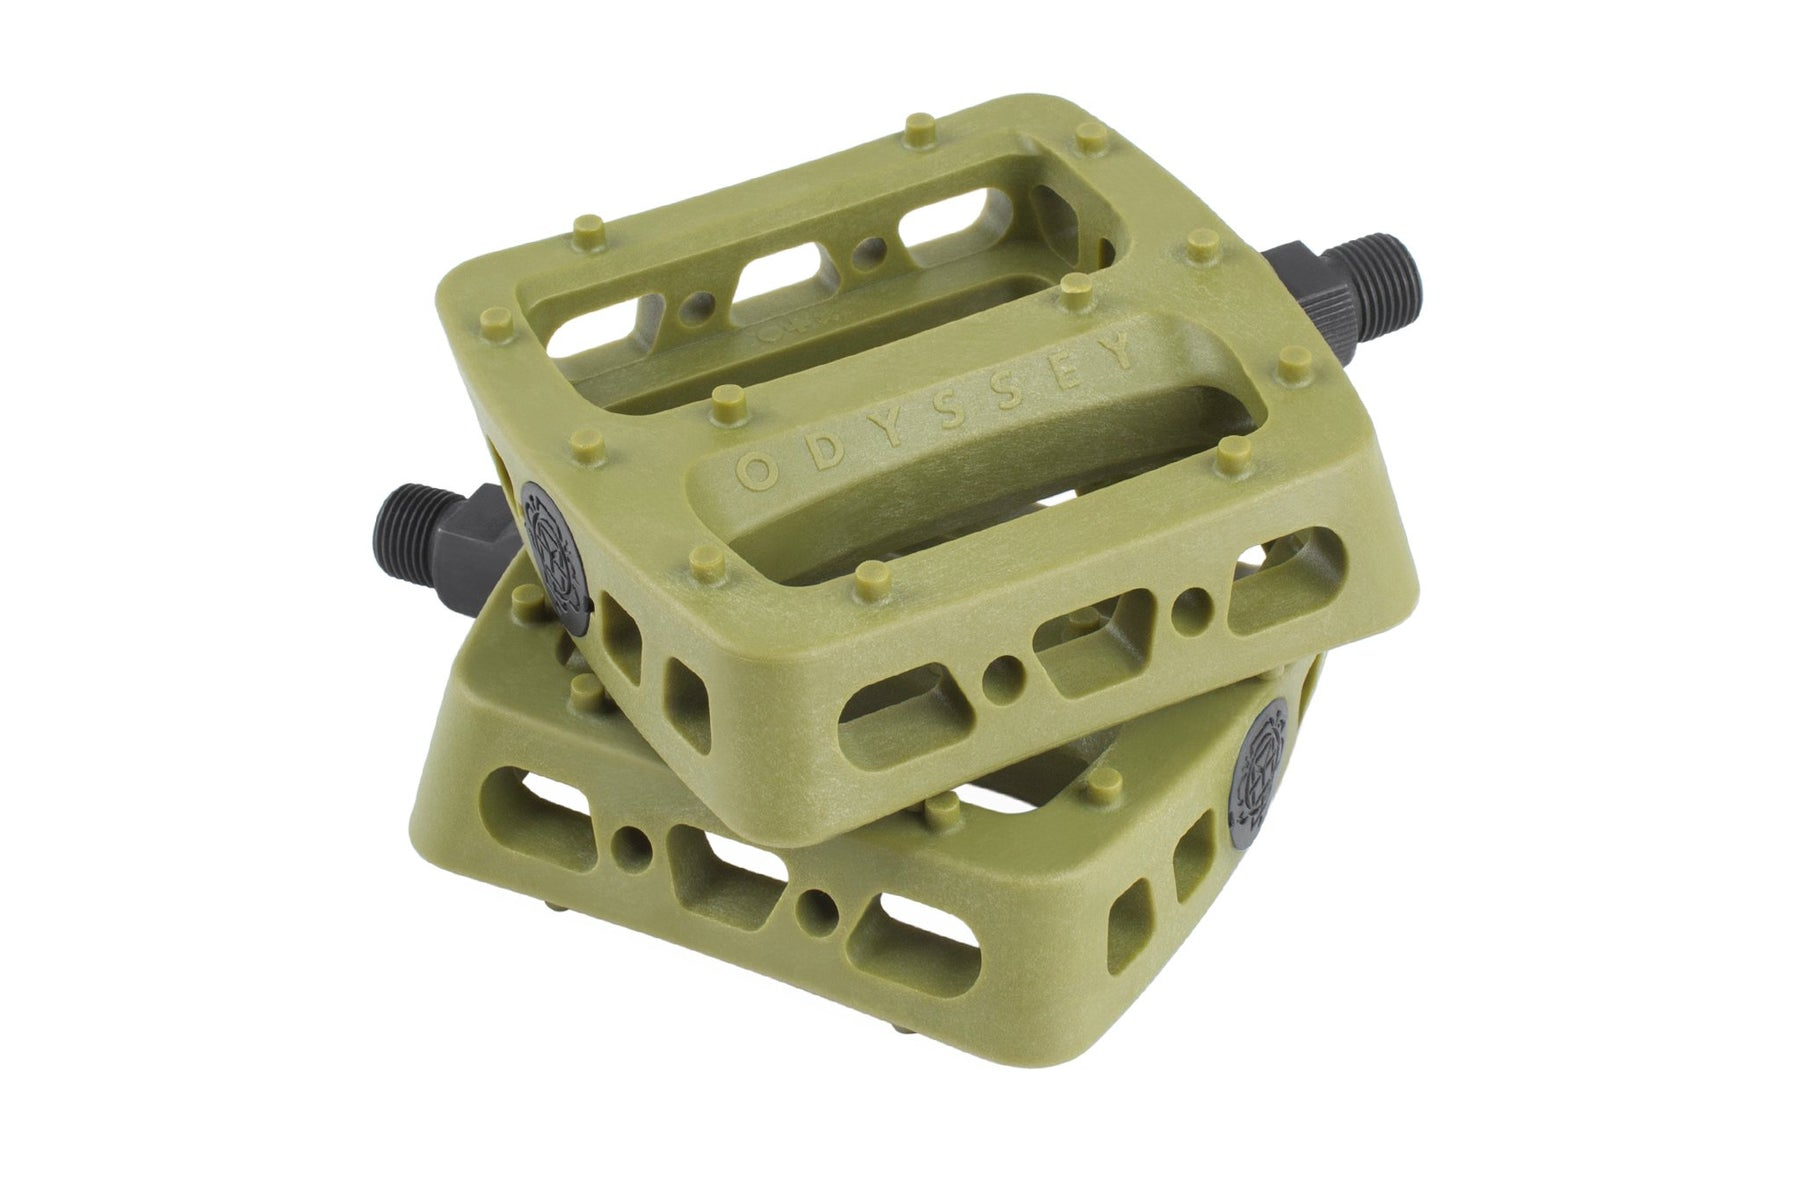 Odyssey Twisted PC Pro pedal Army Green